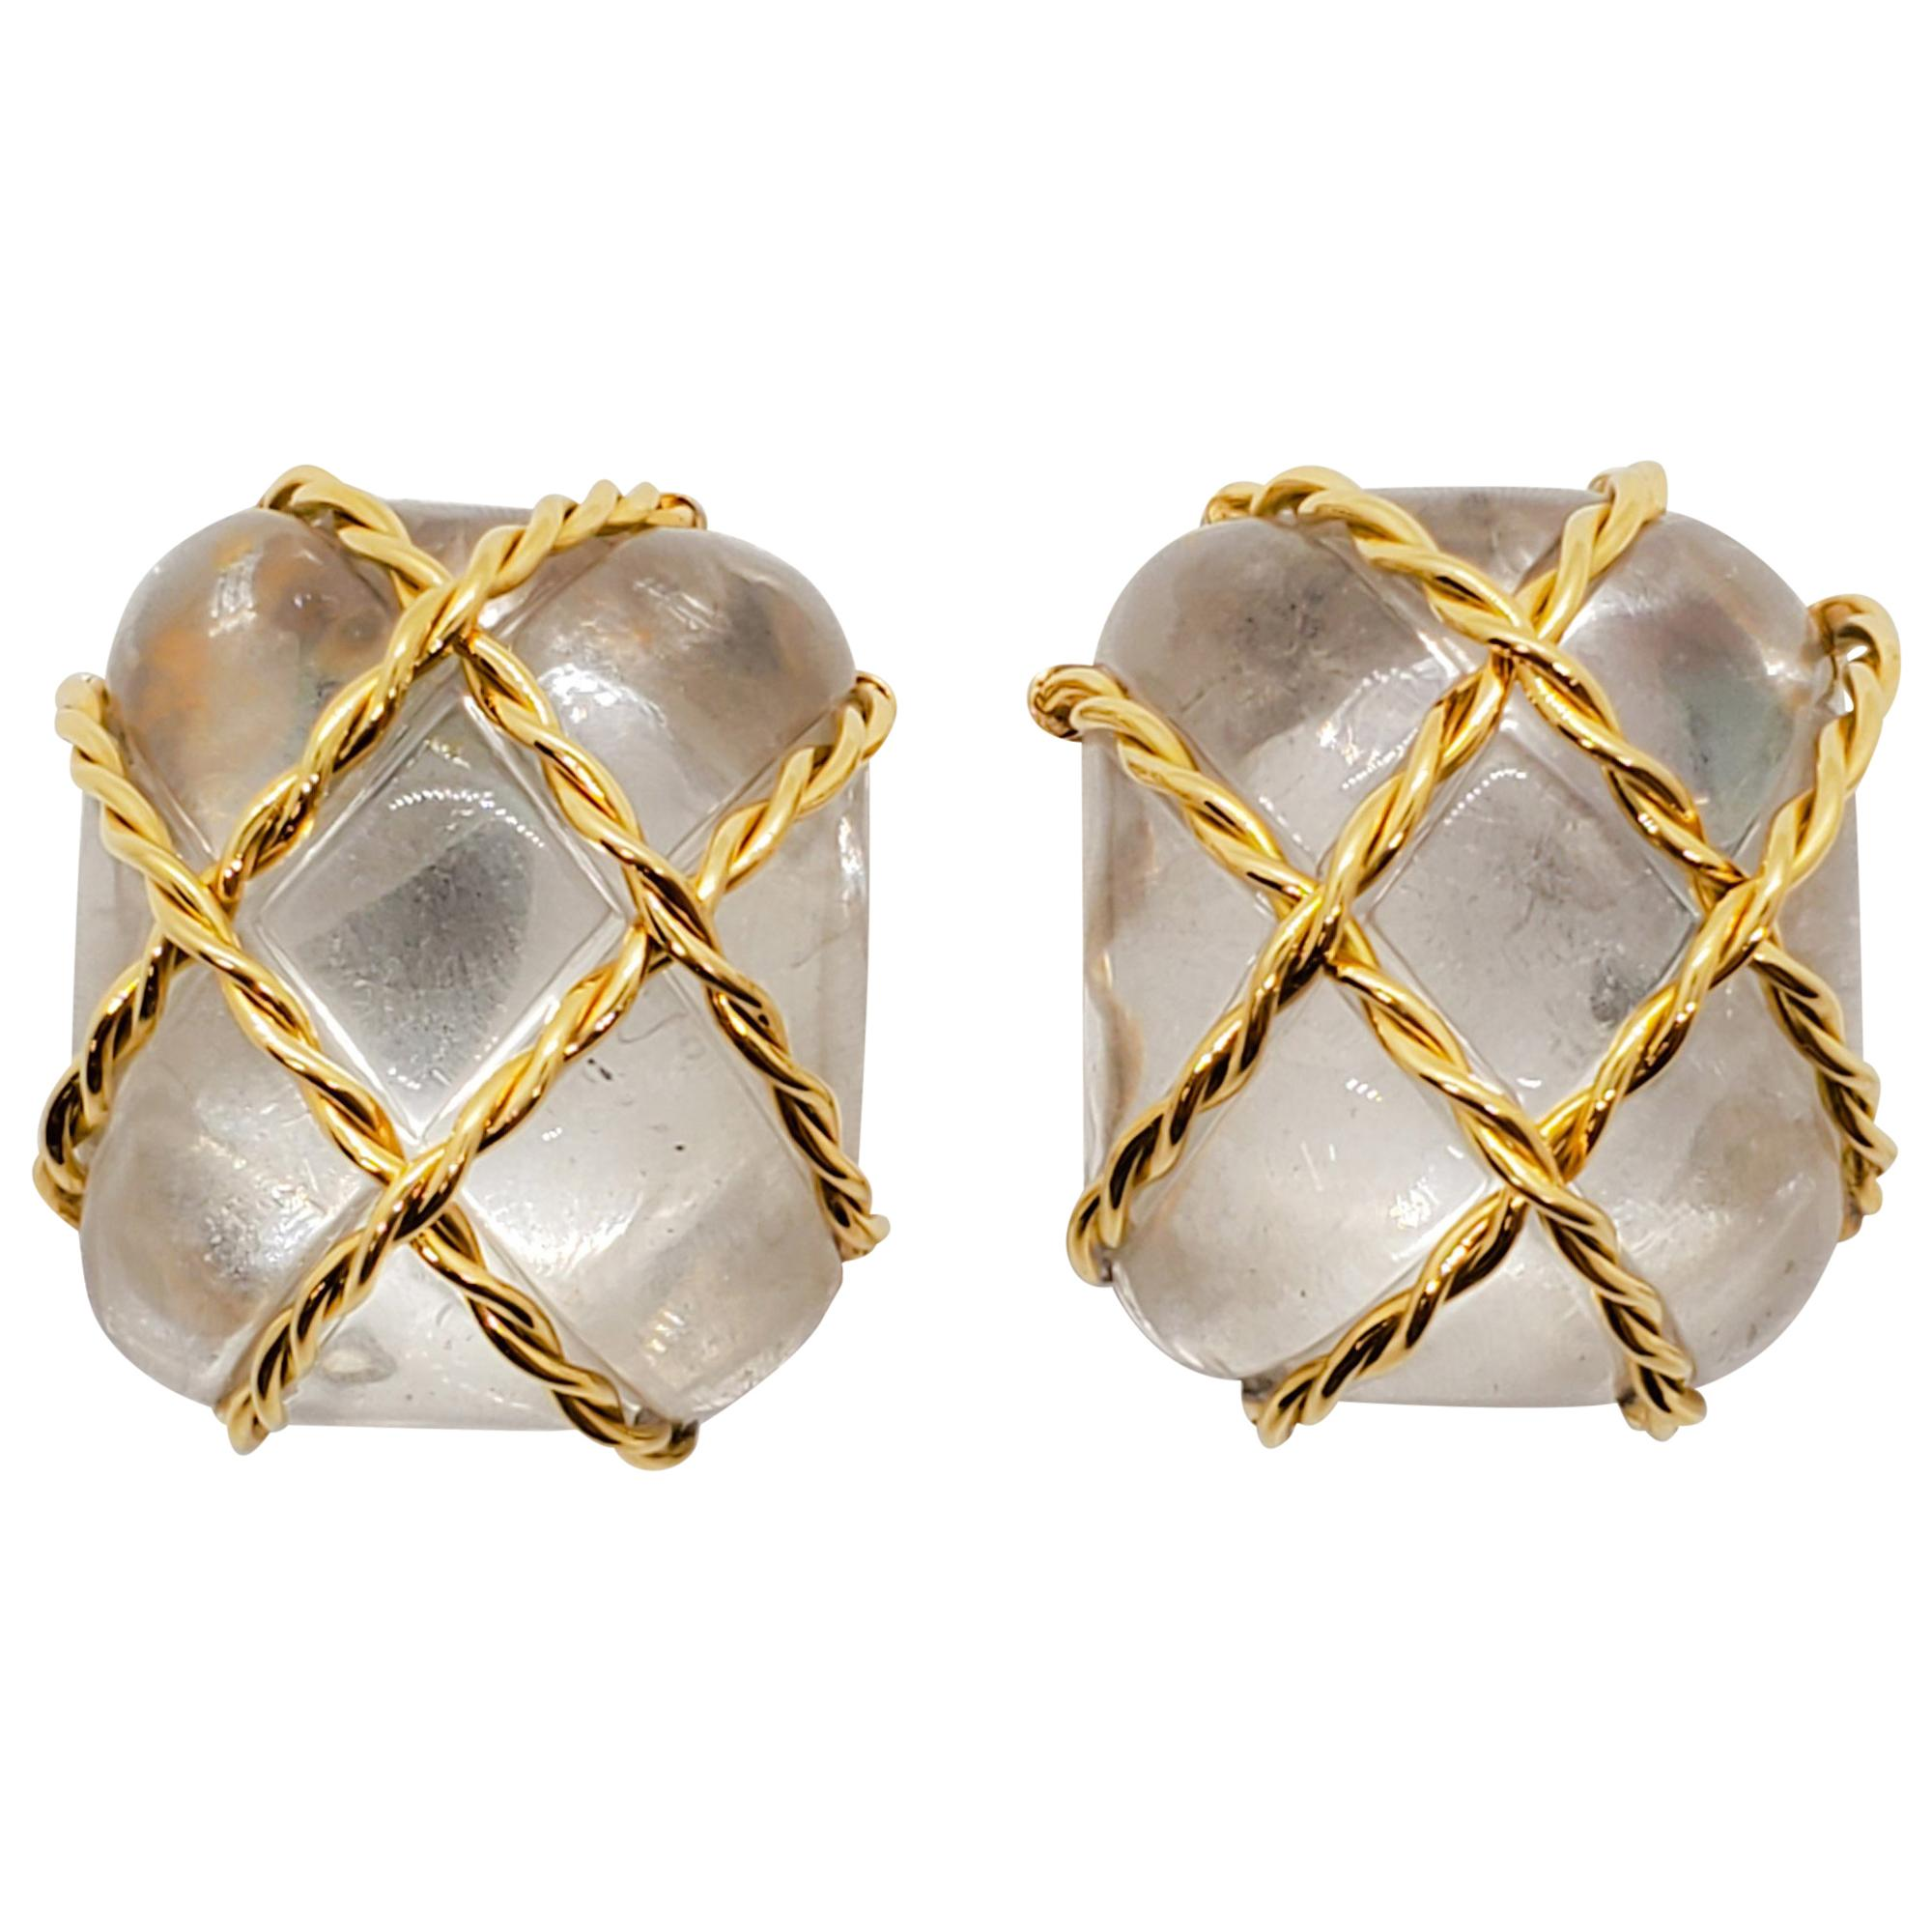 Seaman Schepps Rock Crystal Earrings in 18 Karat Yellow Gold